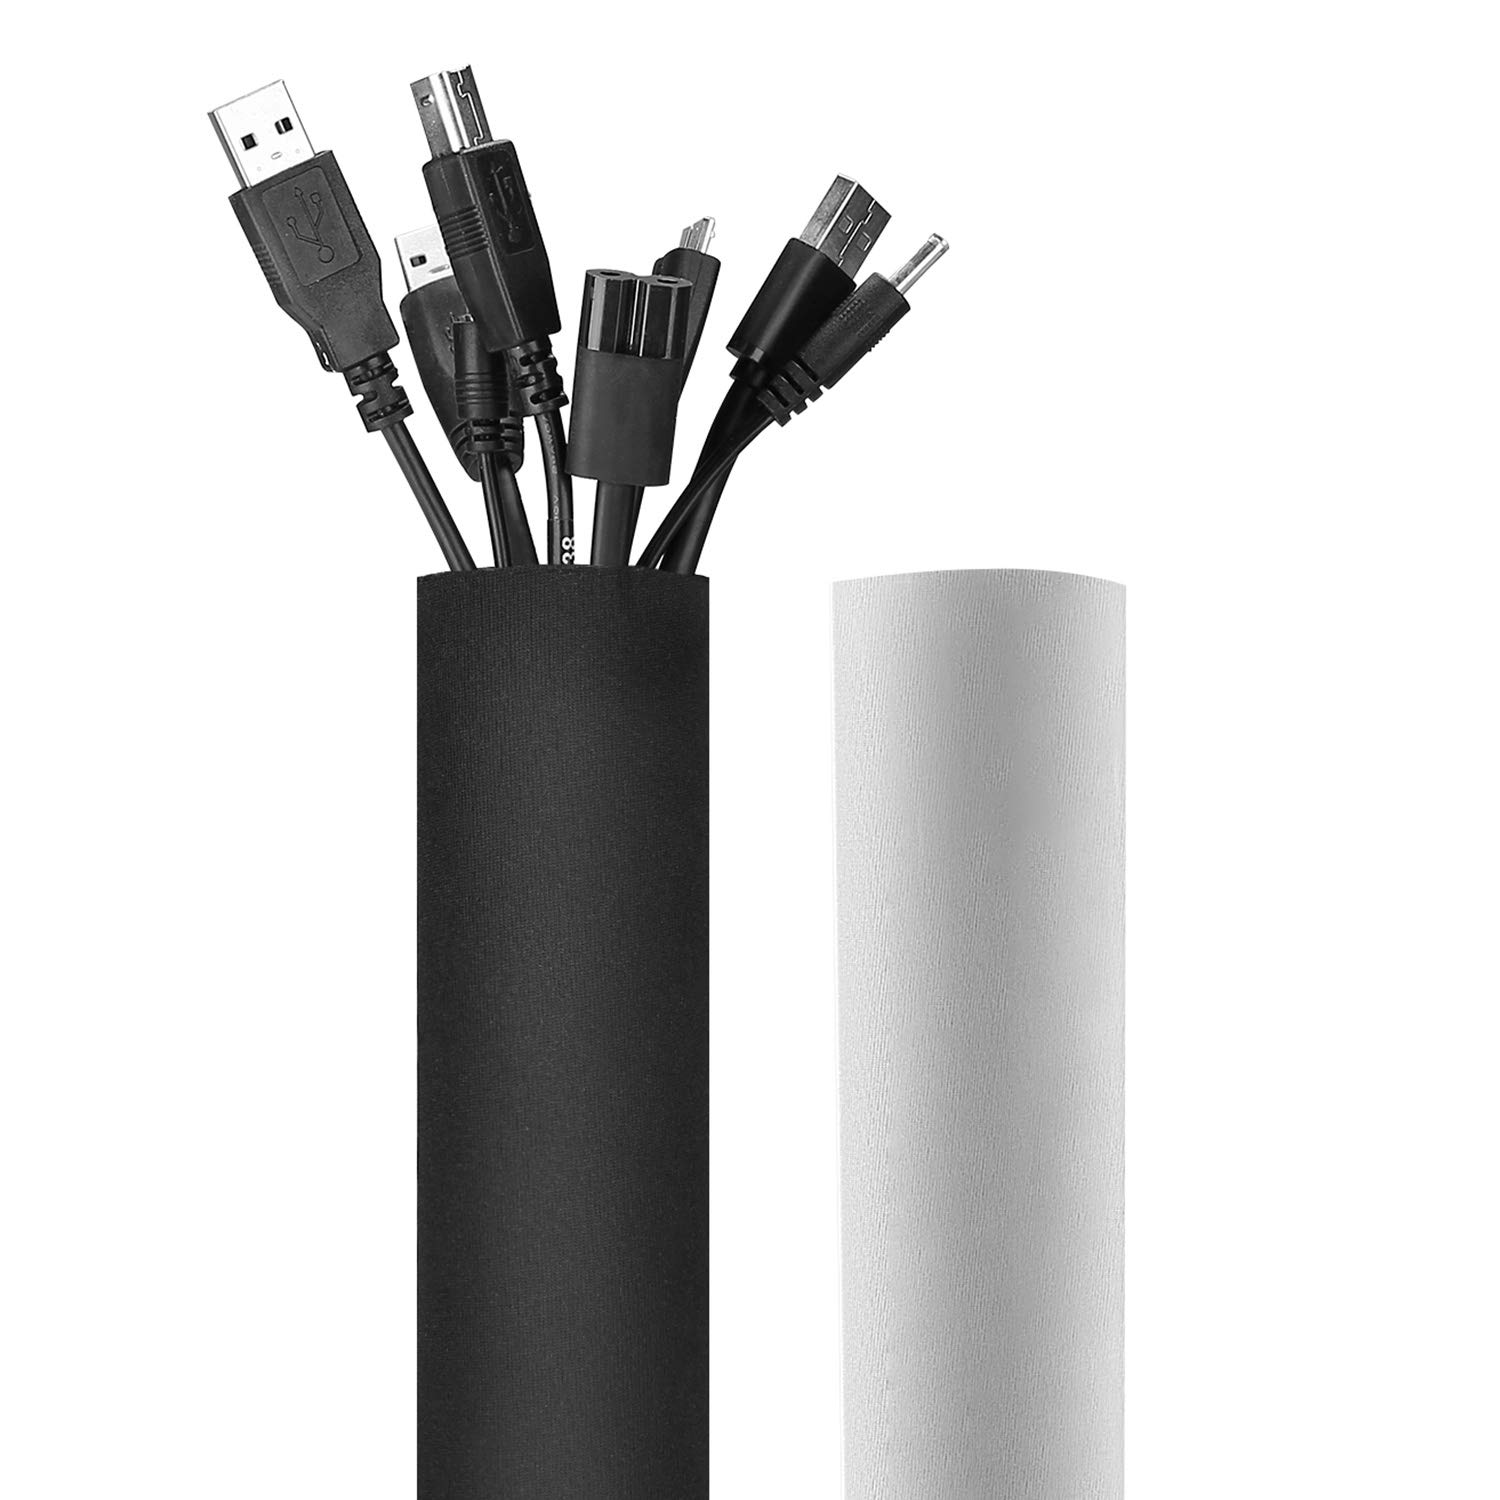 """JOTO 130"""" Cable Management Sleeve, Cuttable Neoprene Cord Management Organizer System, Flexible Cable wrap Cover Wire Hider for Desk TV Computer Office Home Theater -Reversible Black/White, Large"""